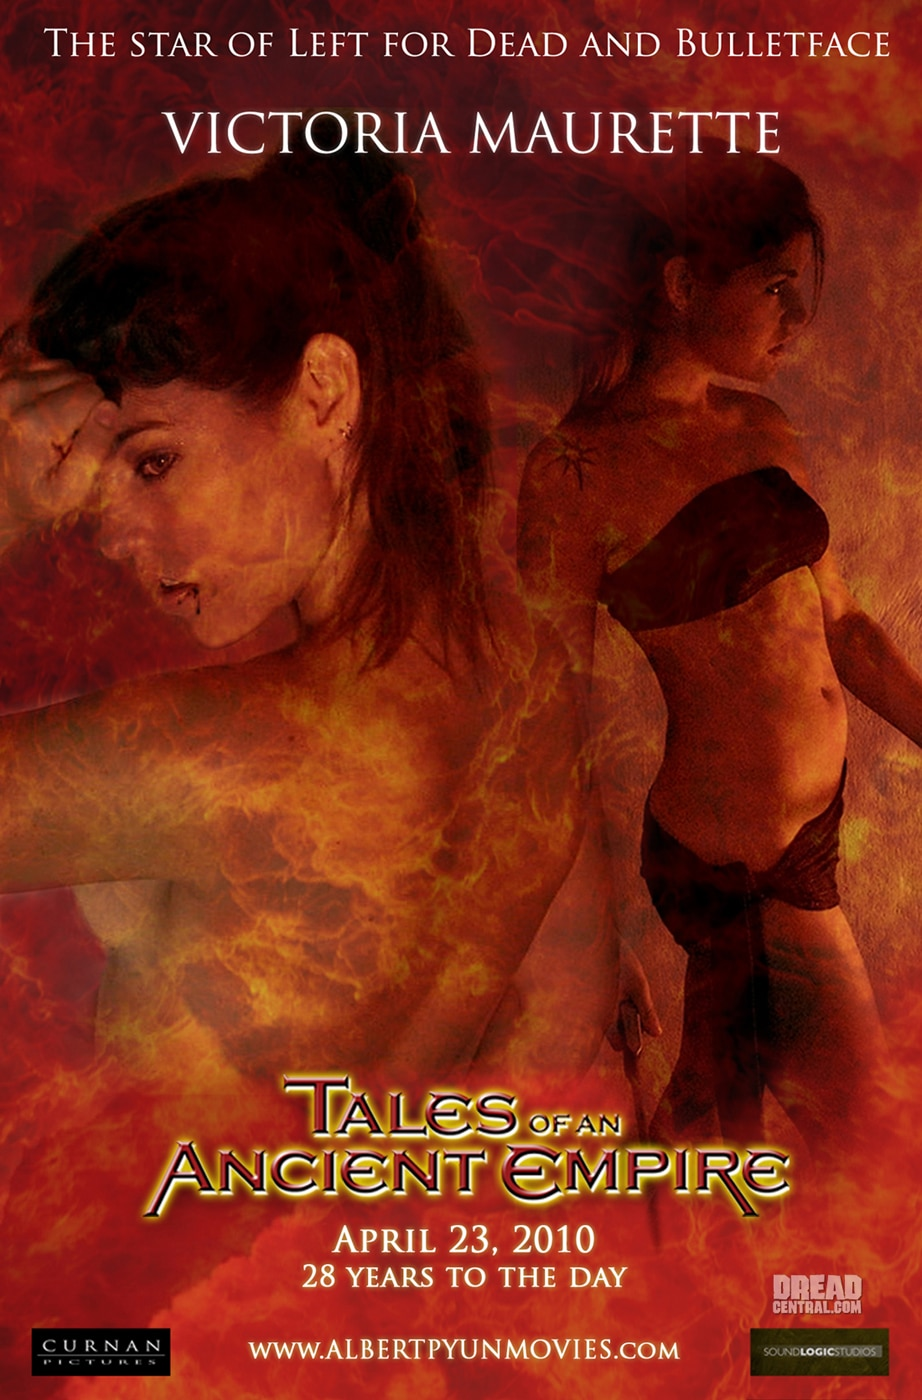 More Details on Victoria Maurette's Character in Tales of an Ancient Empire